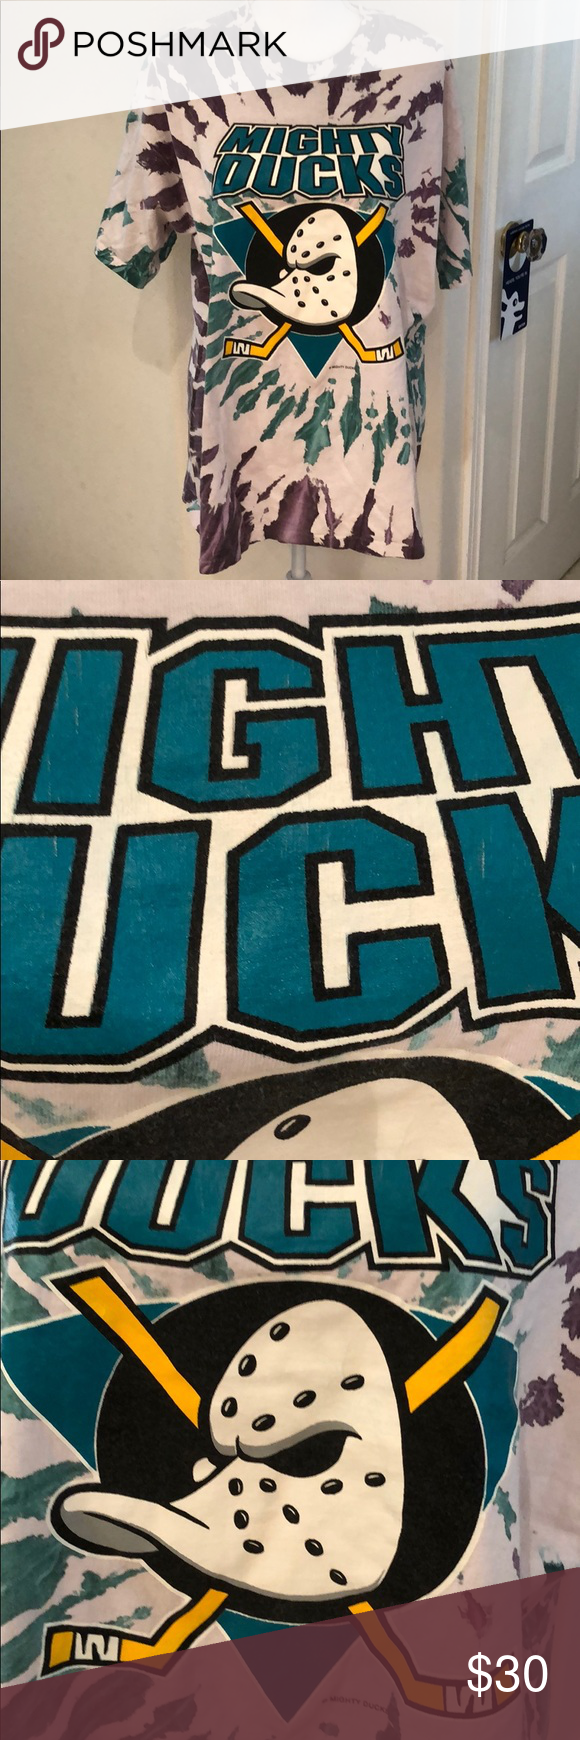 Mighty Ducks Hockey Tie Dye T-Shirt. Sz Men's XL! Rare! Vintage Mighty Ducks of Anaheim Ice Hockey Tie Dye T-Shirt. Sz Men's XL! Gently pre-loved. Slight cracking on graphics (see pics). 100% Cotton. Teal and purple tie dye with a sort of faded look. Perfect for the Ducks fan in your life! Mighty Ducks Shirts Tees - Short Sleeve